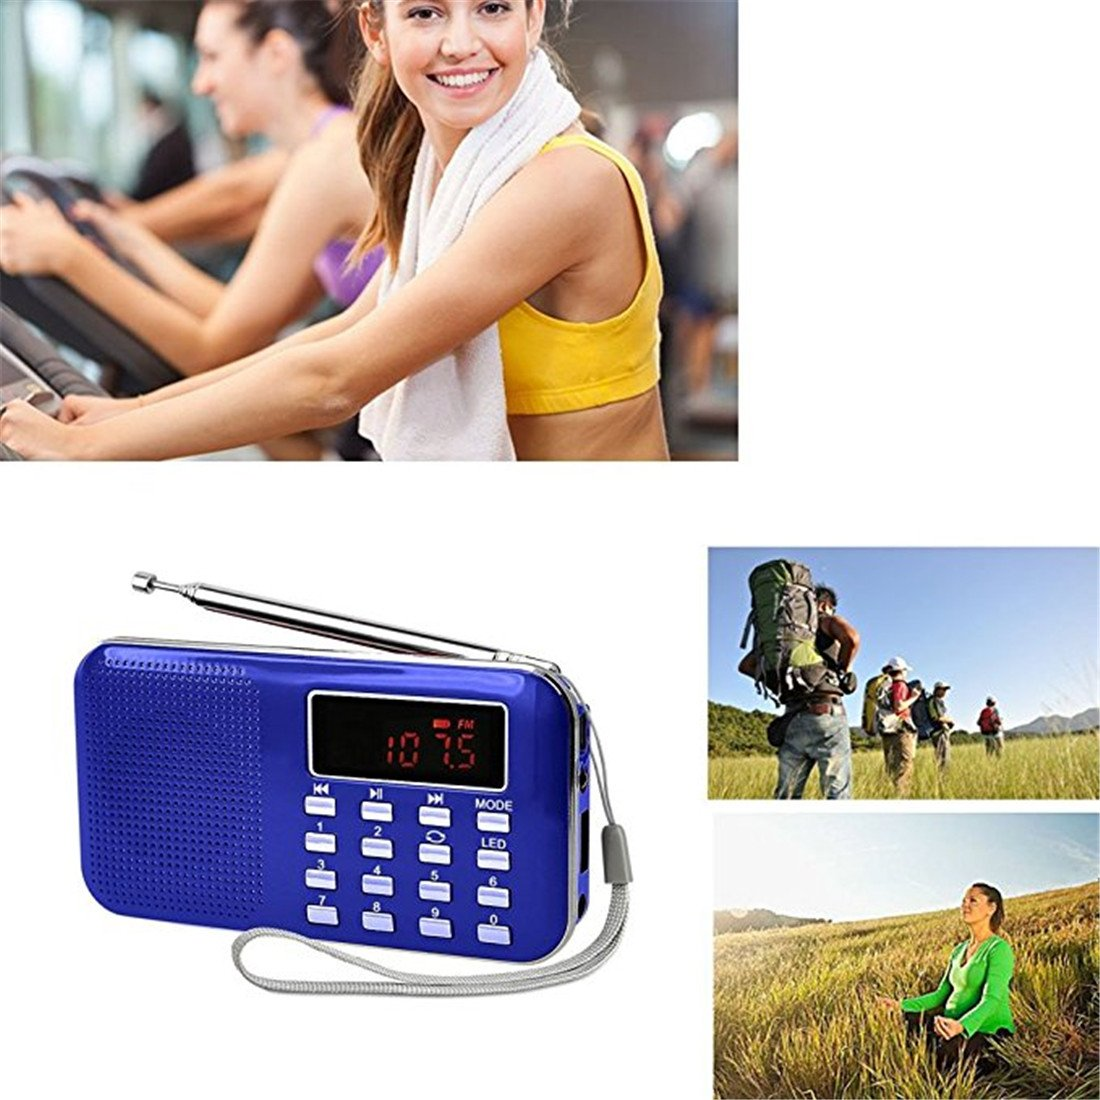 BeiLan Mini Digital AM FM Pocket Radio Portable Speaker Mp3 Music Player Stereo Sound Support TF Card USB Disk with LED Screen Display and Emergency Flashlight Function (Blue) by BeiLan (Image #3)